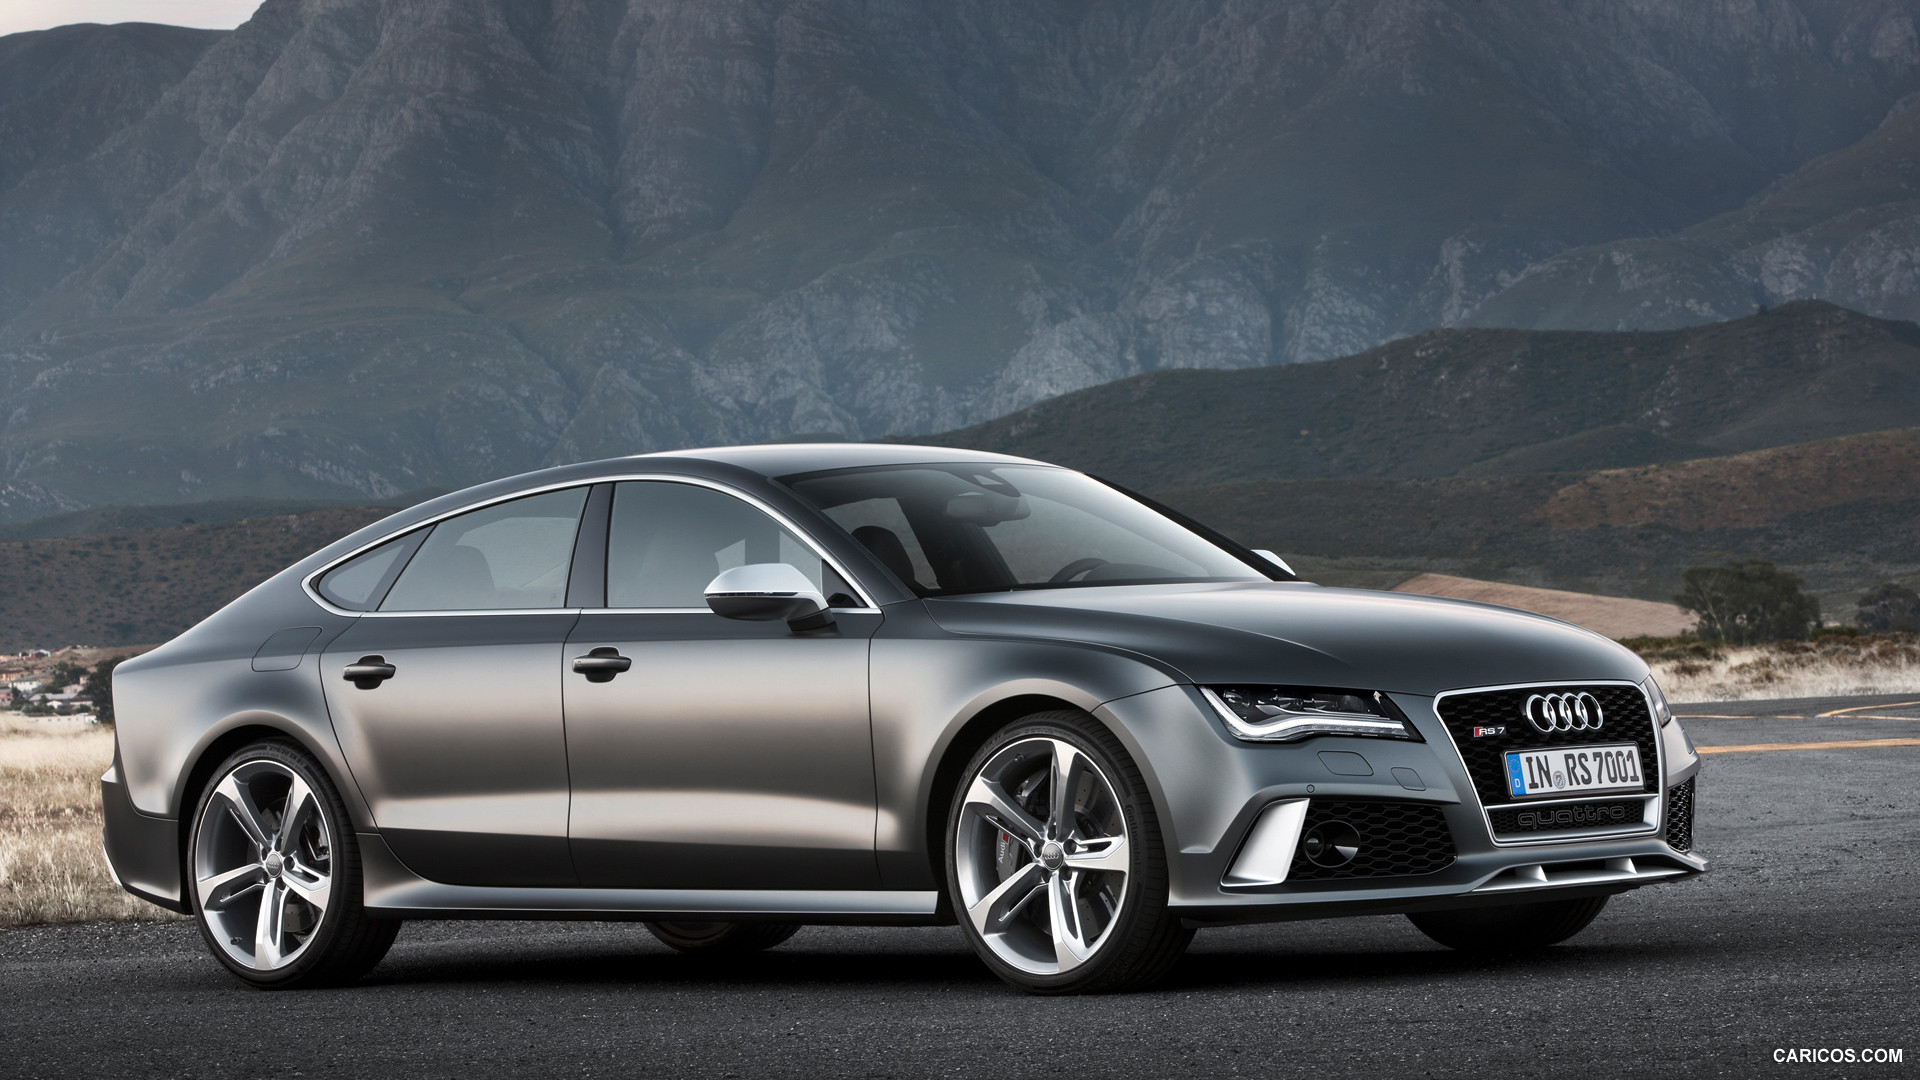 rs7 – Car Wallpapers For The Android,Iphone 6 ,Samsung S5 ,Desktop ,Mobile 10 Wallpaper